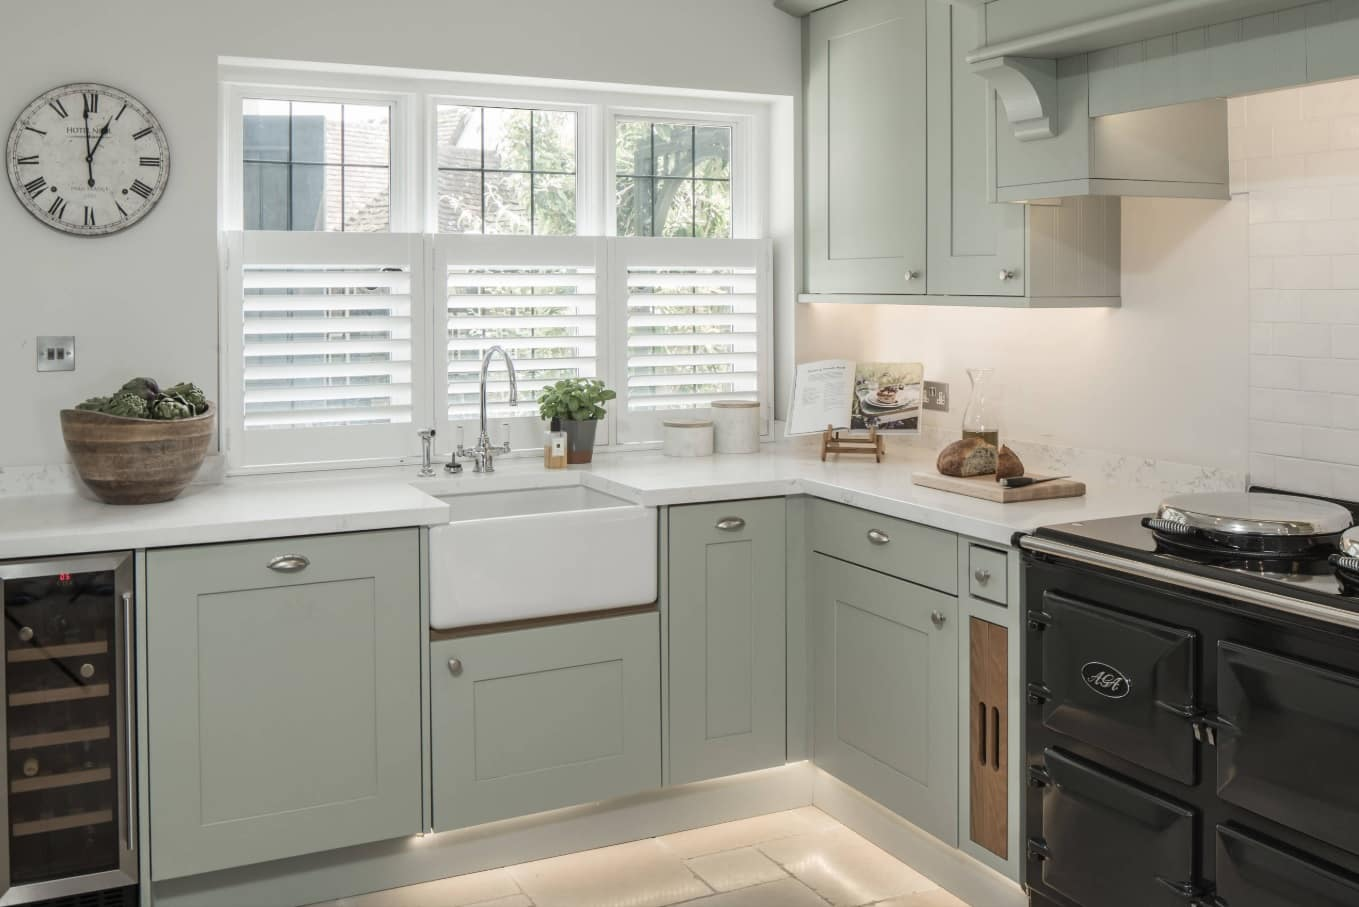 Top 15 Home Security Tips and Tricks. Nice ethnic casual styled kitchen with bottom lighting